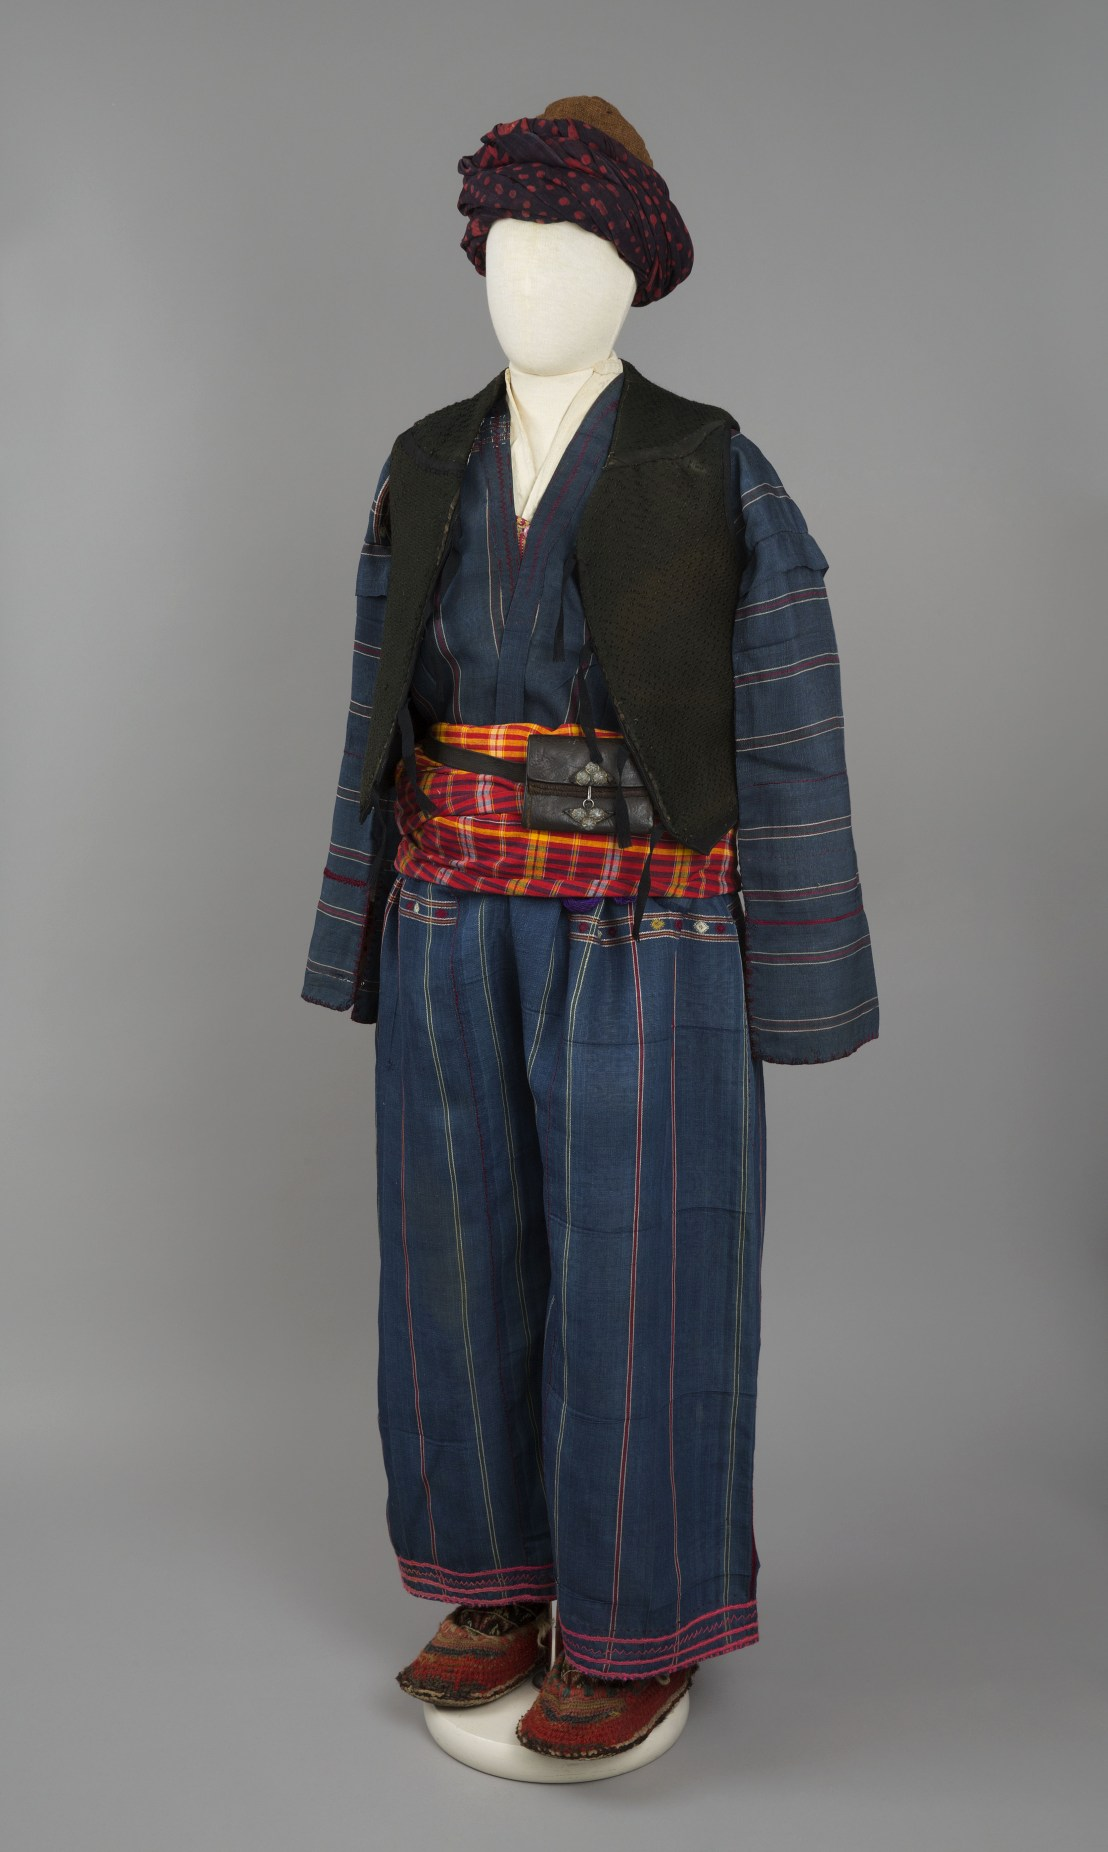 Armenian male costume of an inhabitant of Shatakh, early 20th century. – The Russian Museum of Ethnography